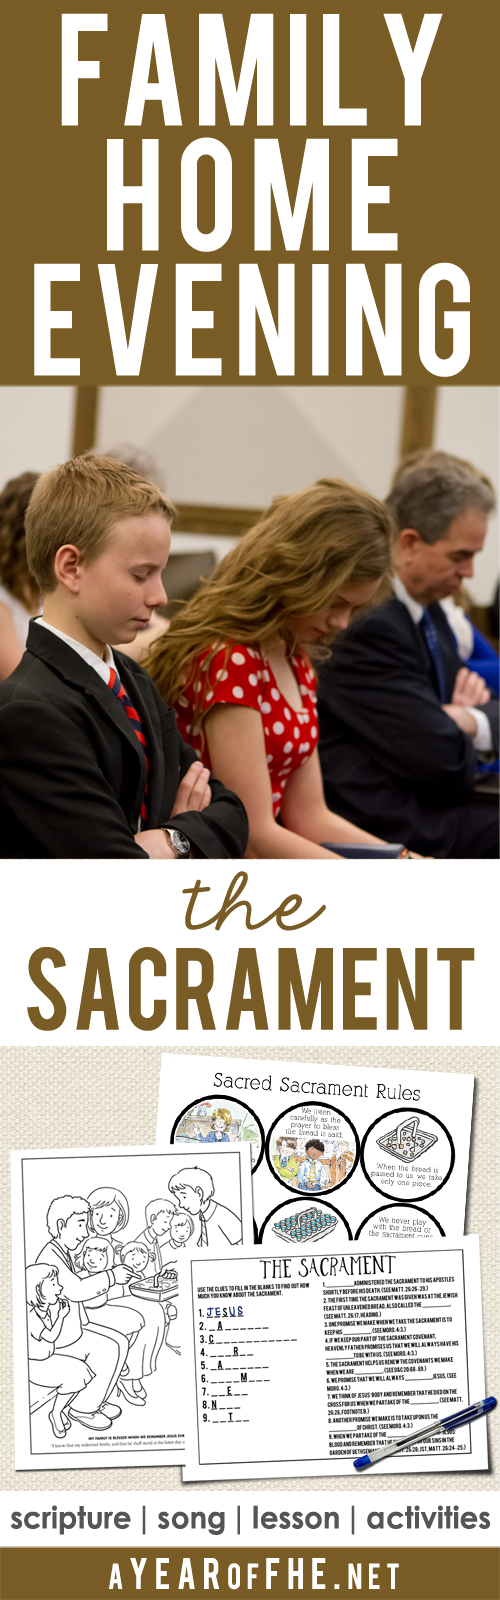 A Year Of FHE Year 02 Lesson 40 The Sacrament